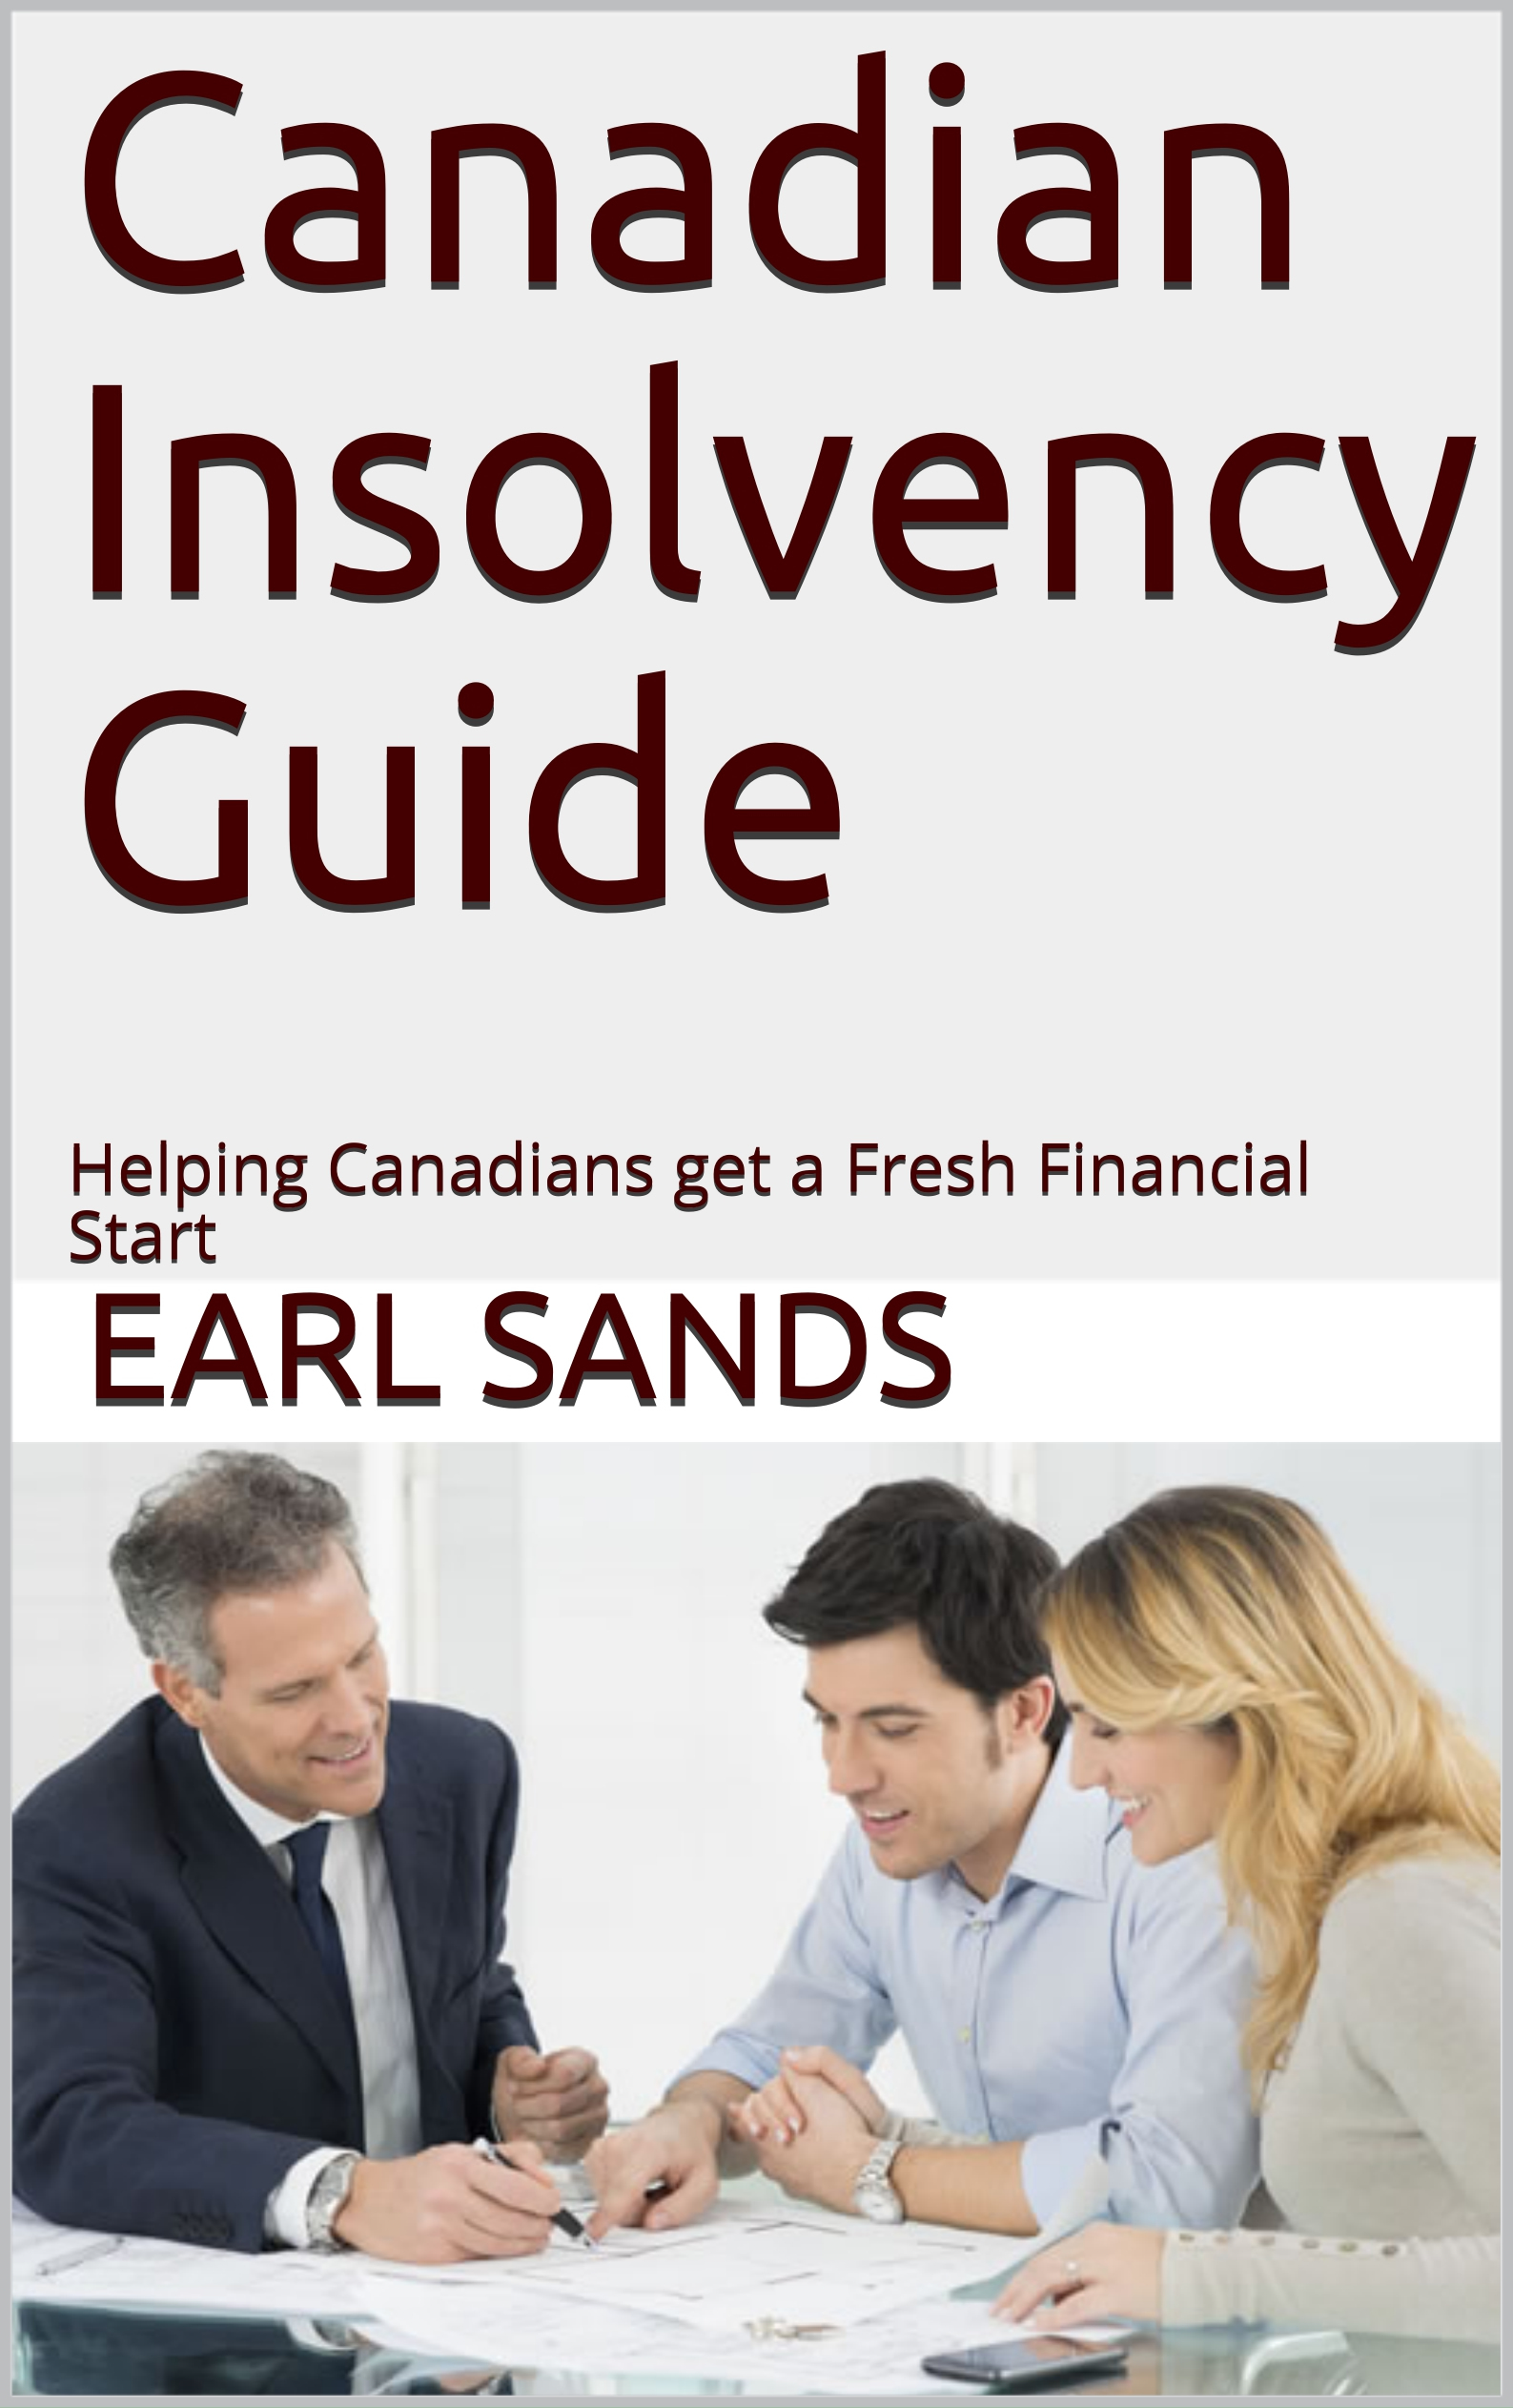 Canadian Insolvency Guide Slideshare Presentation